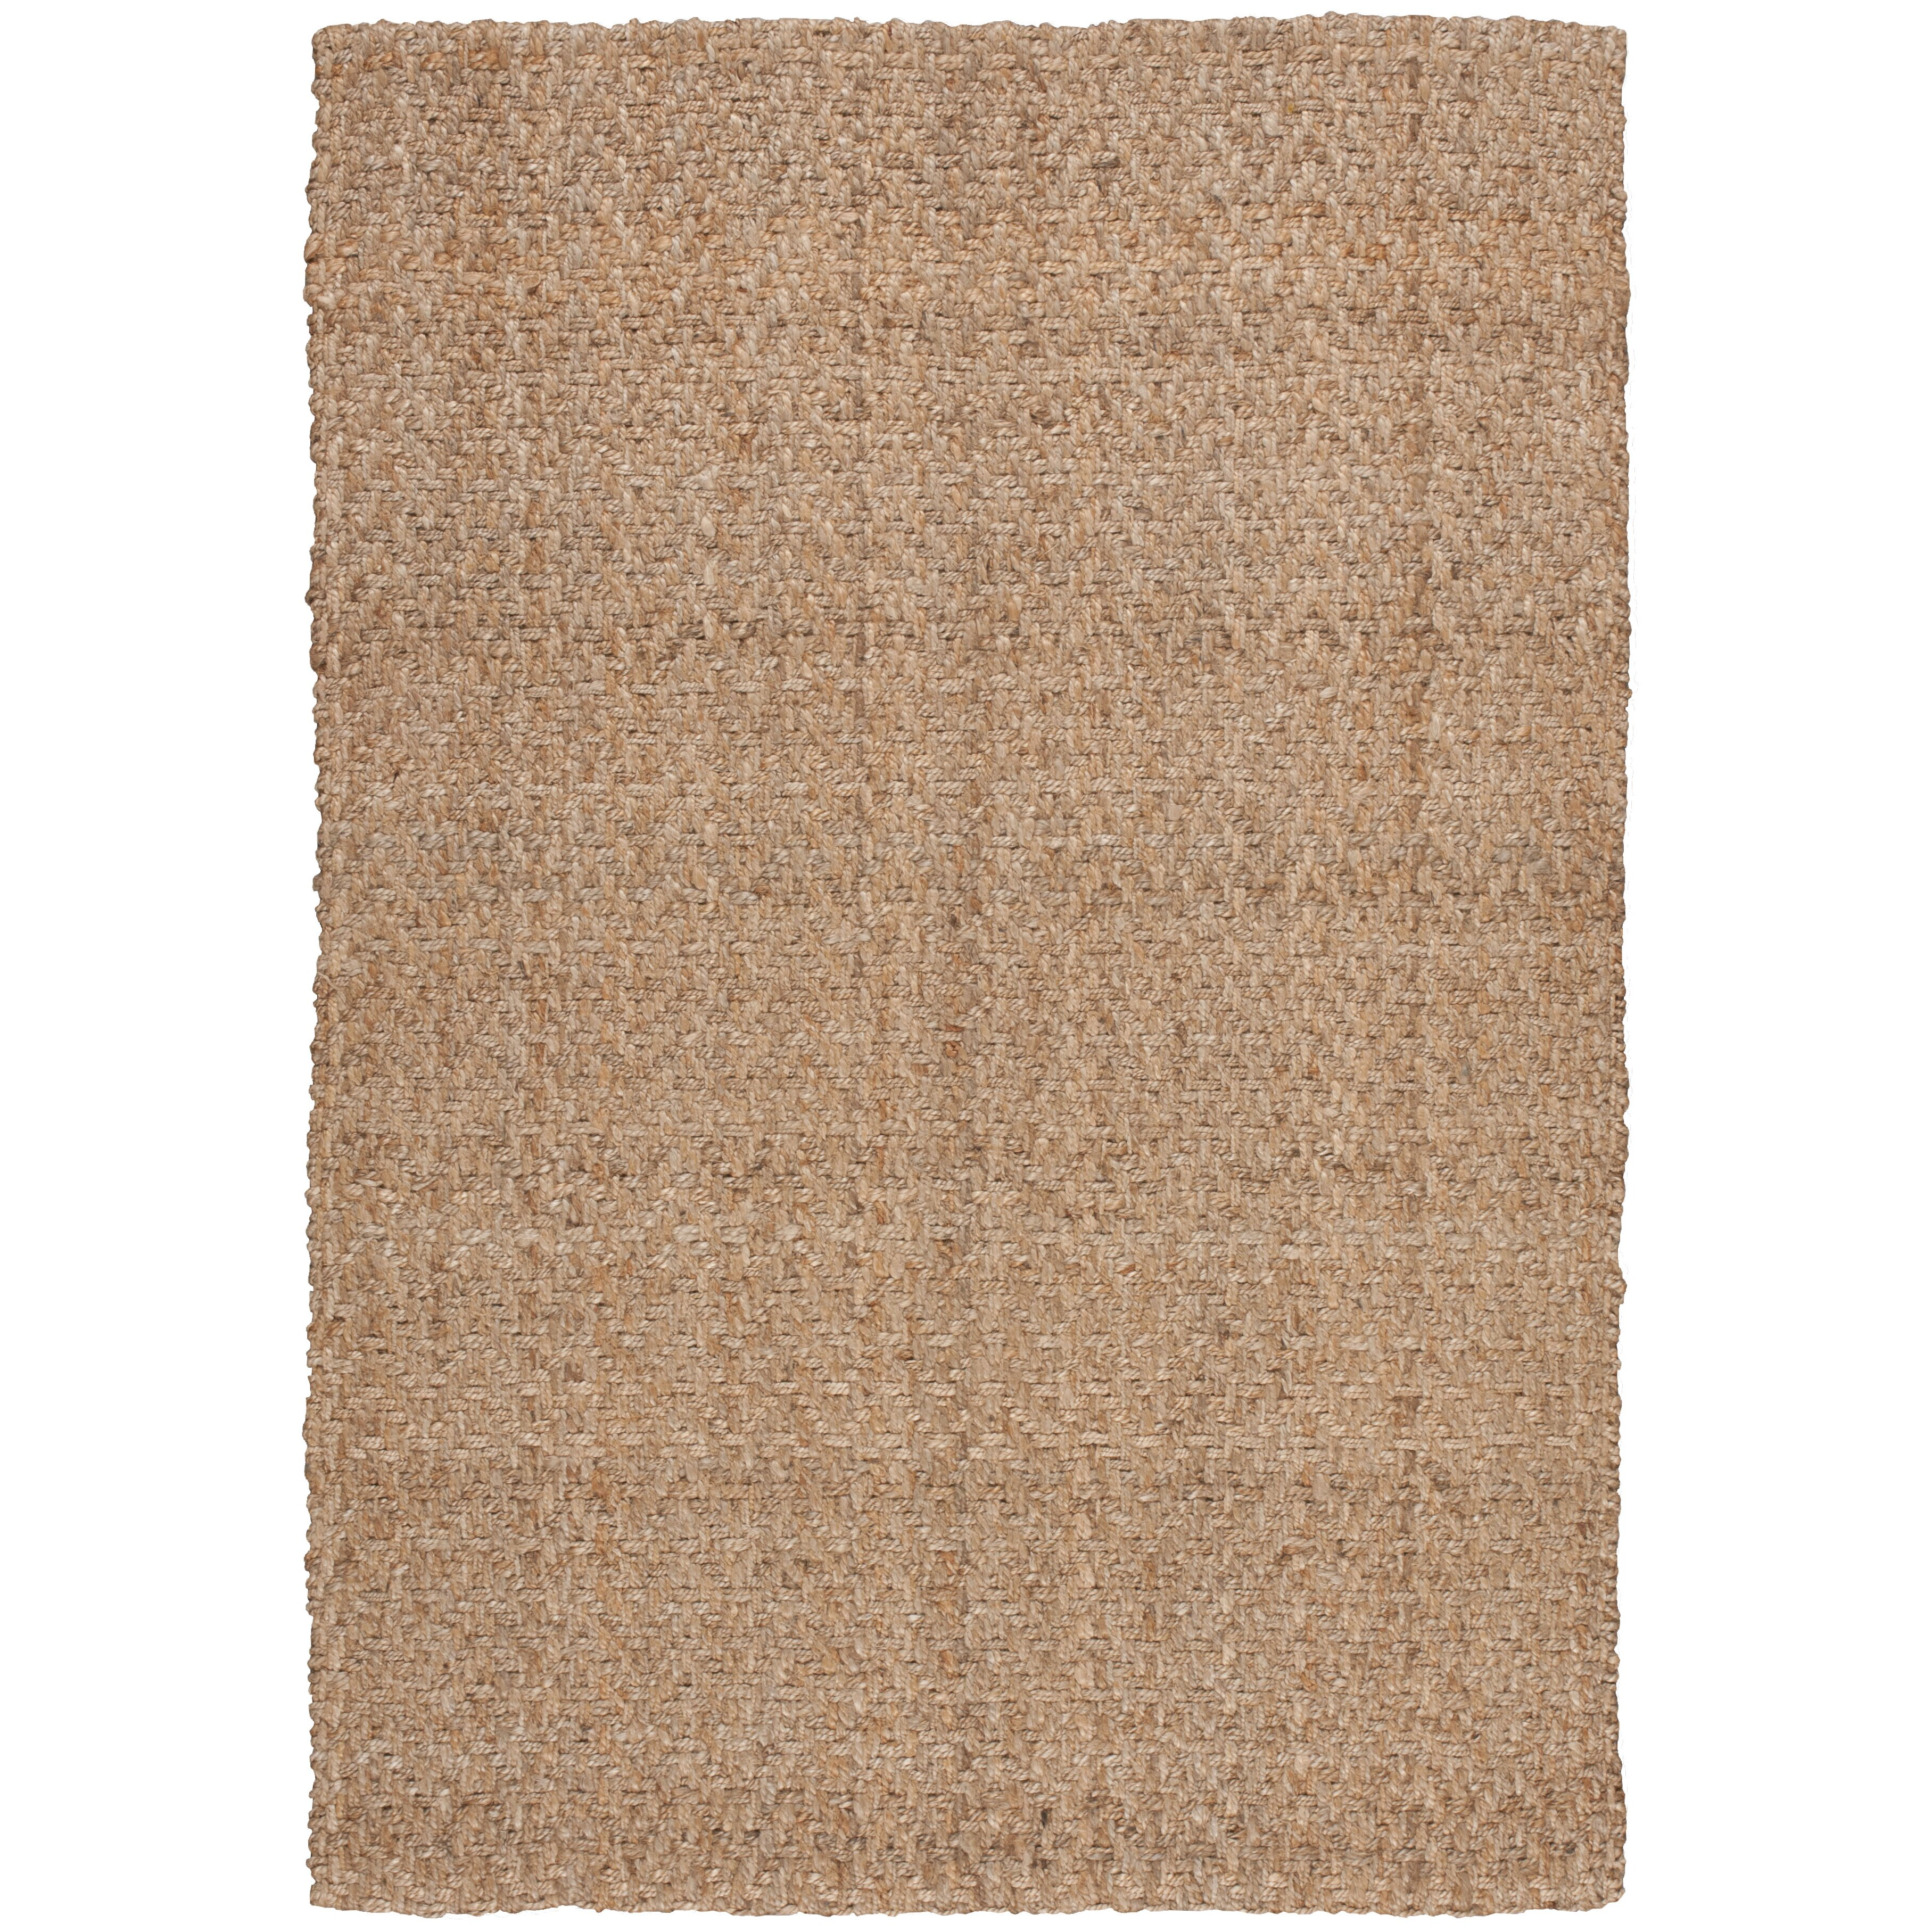 Rodgers Hand-Woven Brown Area Rug | Wayfair